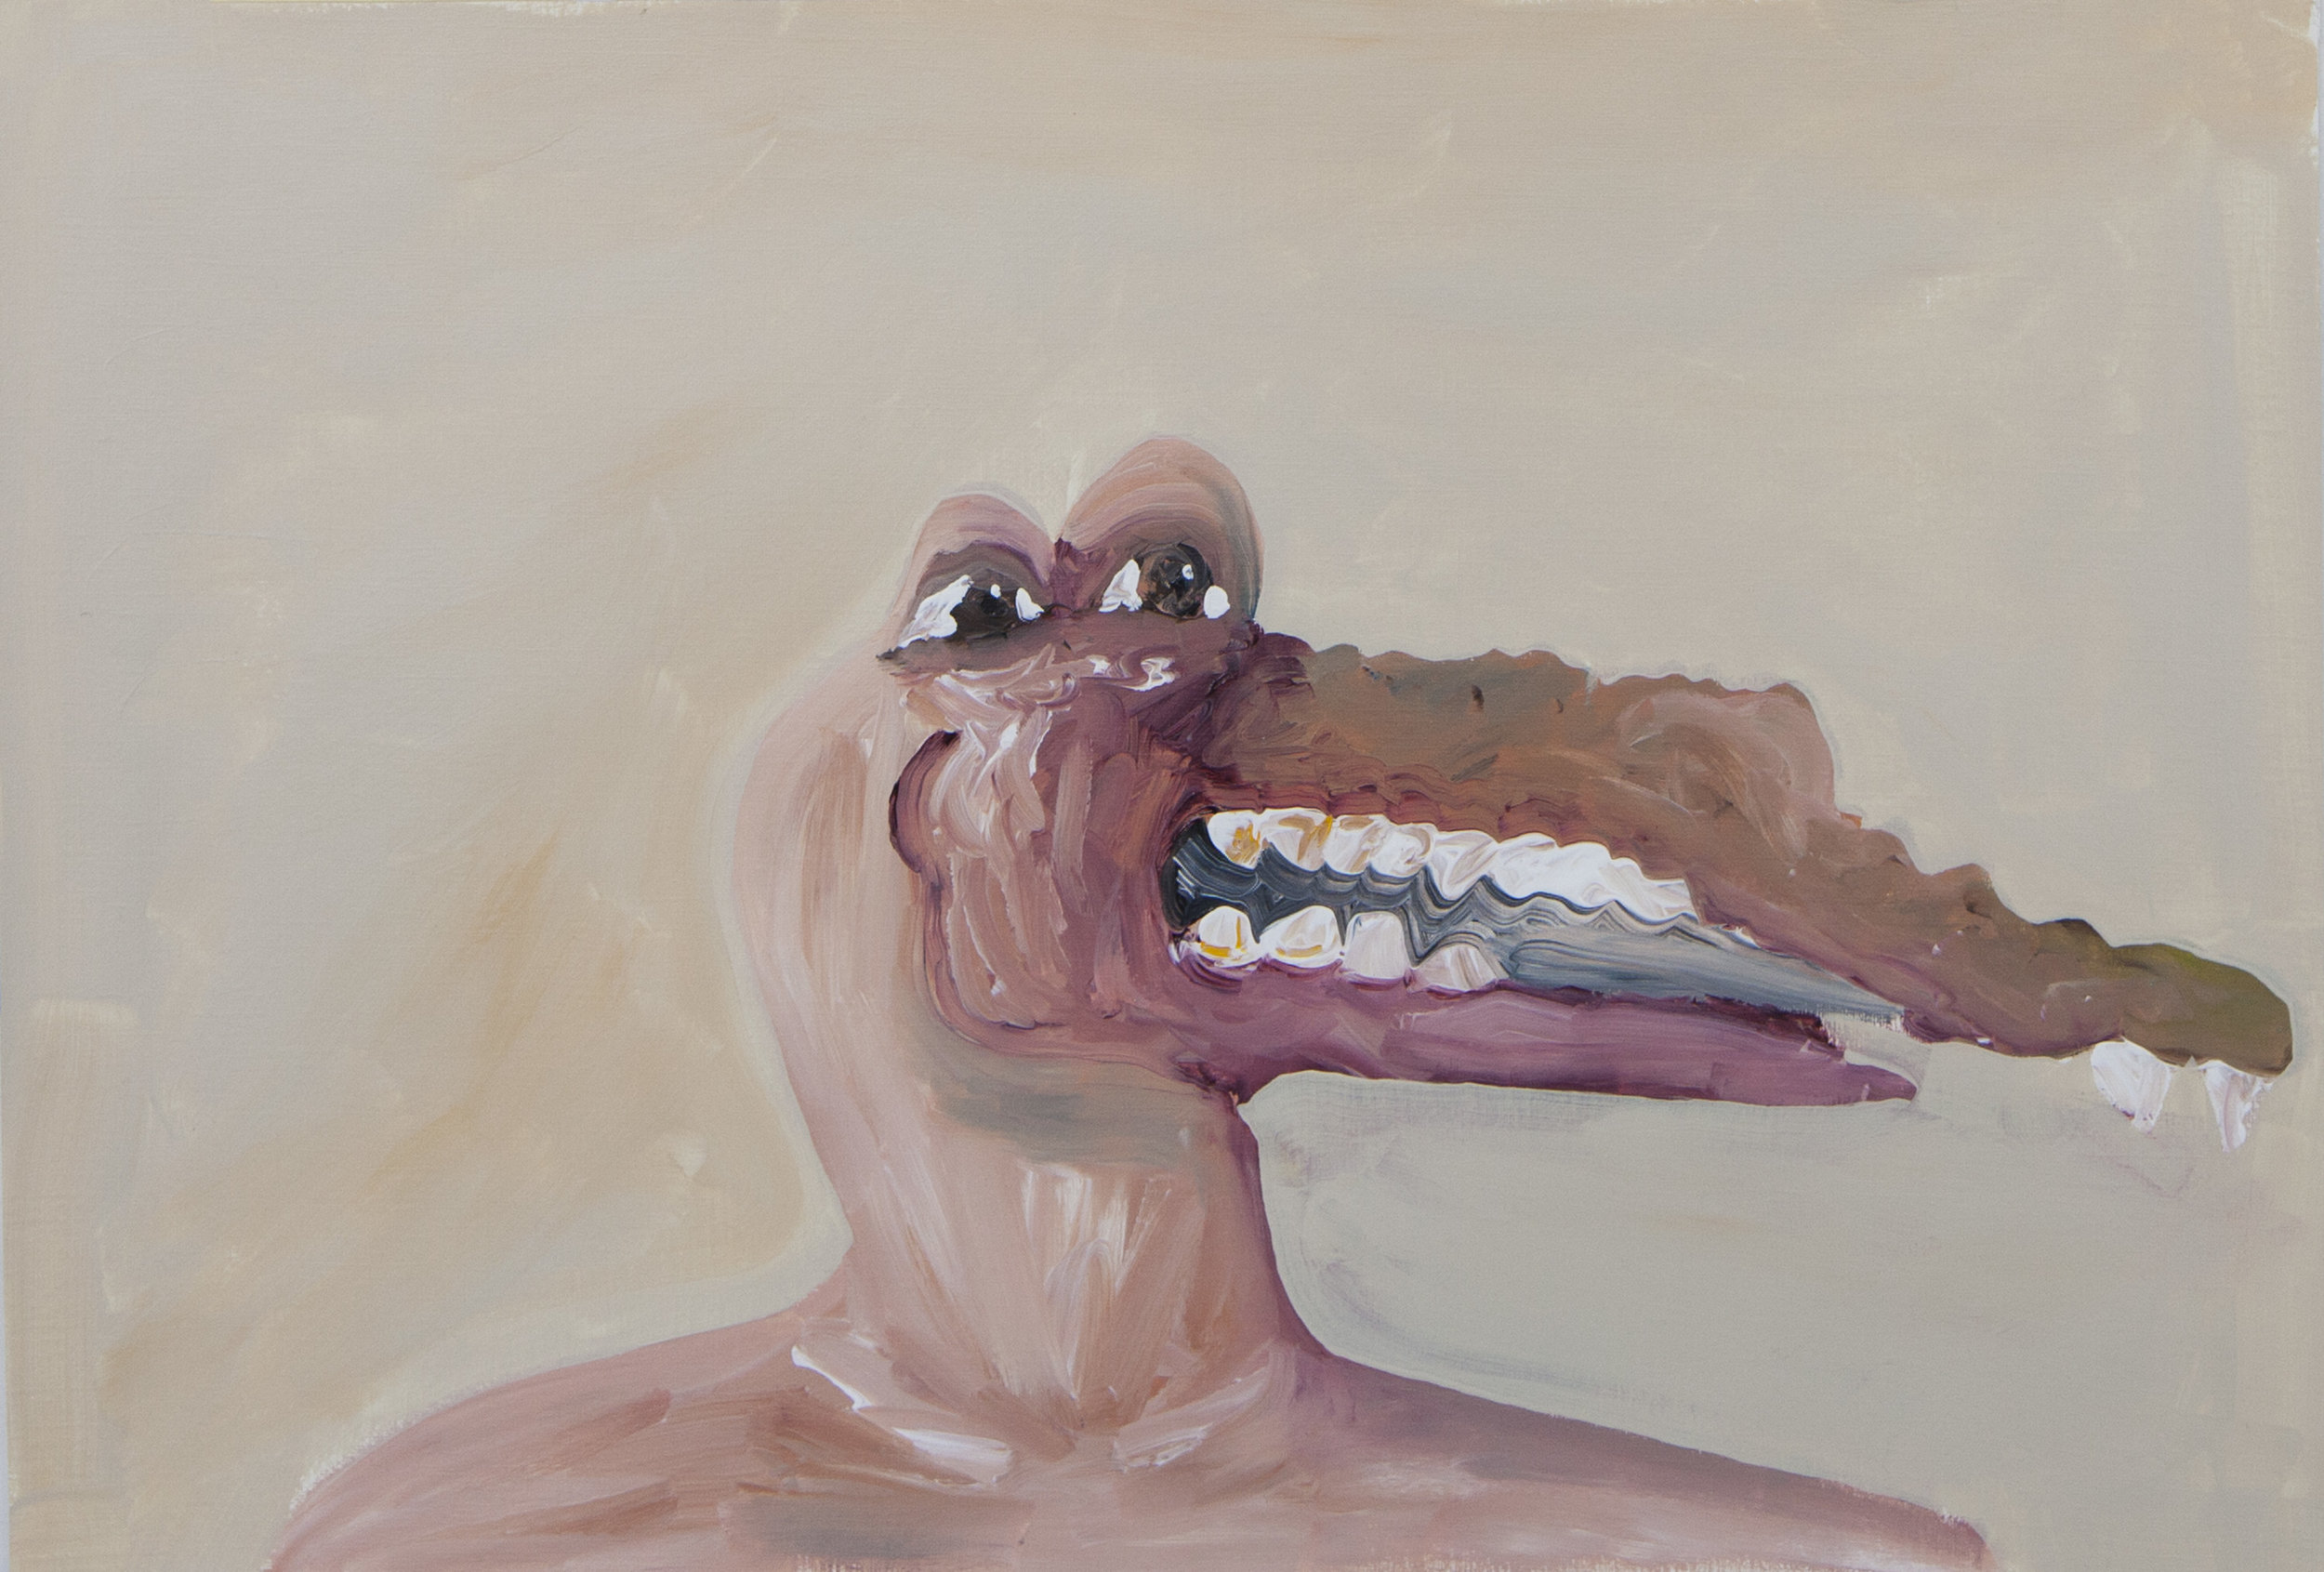 Gator Face,  2013 Acrylic on paper 16.5H x 23.5W inches